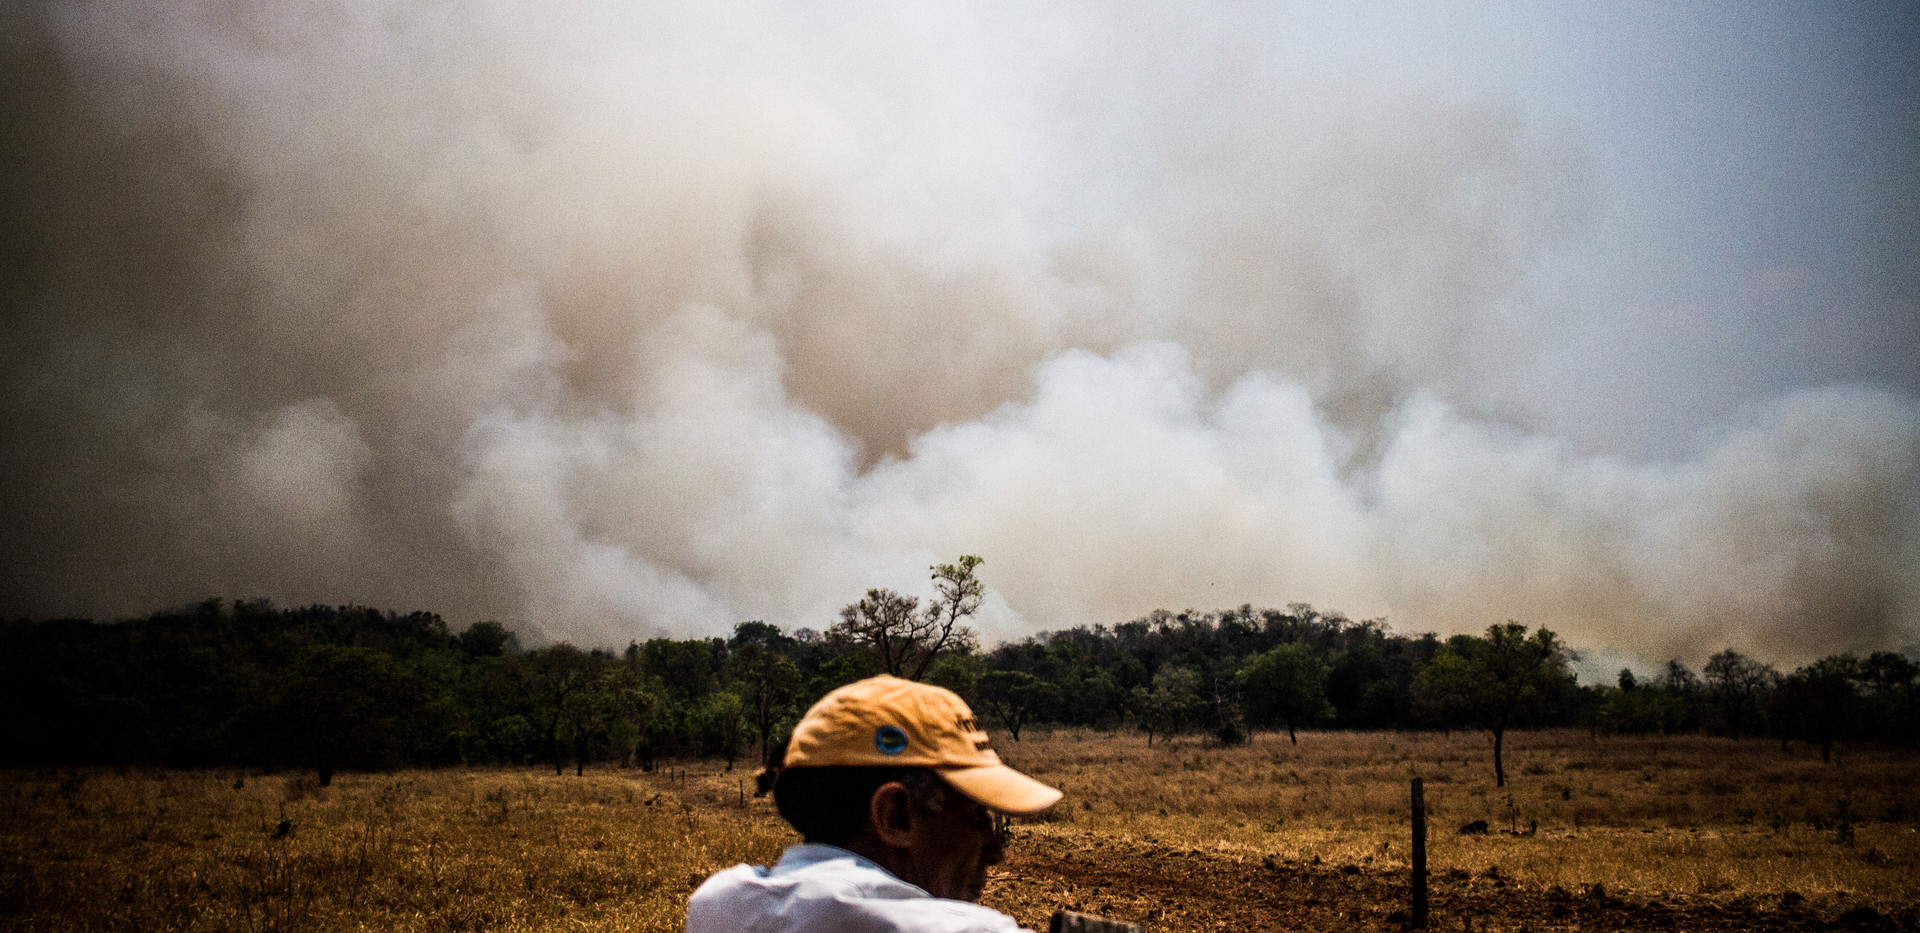 A Local Farmer in Nobres, State of Mato Grosso watches as a cloud of smoke rises from a fire on a farm.